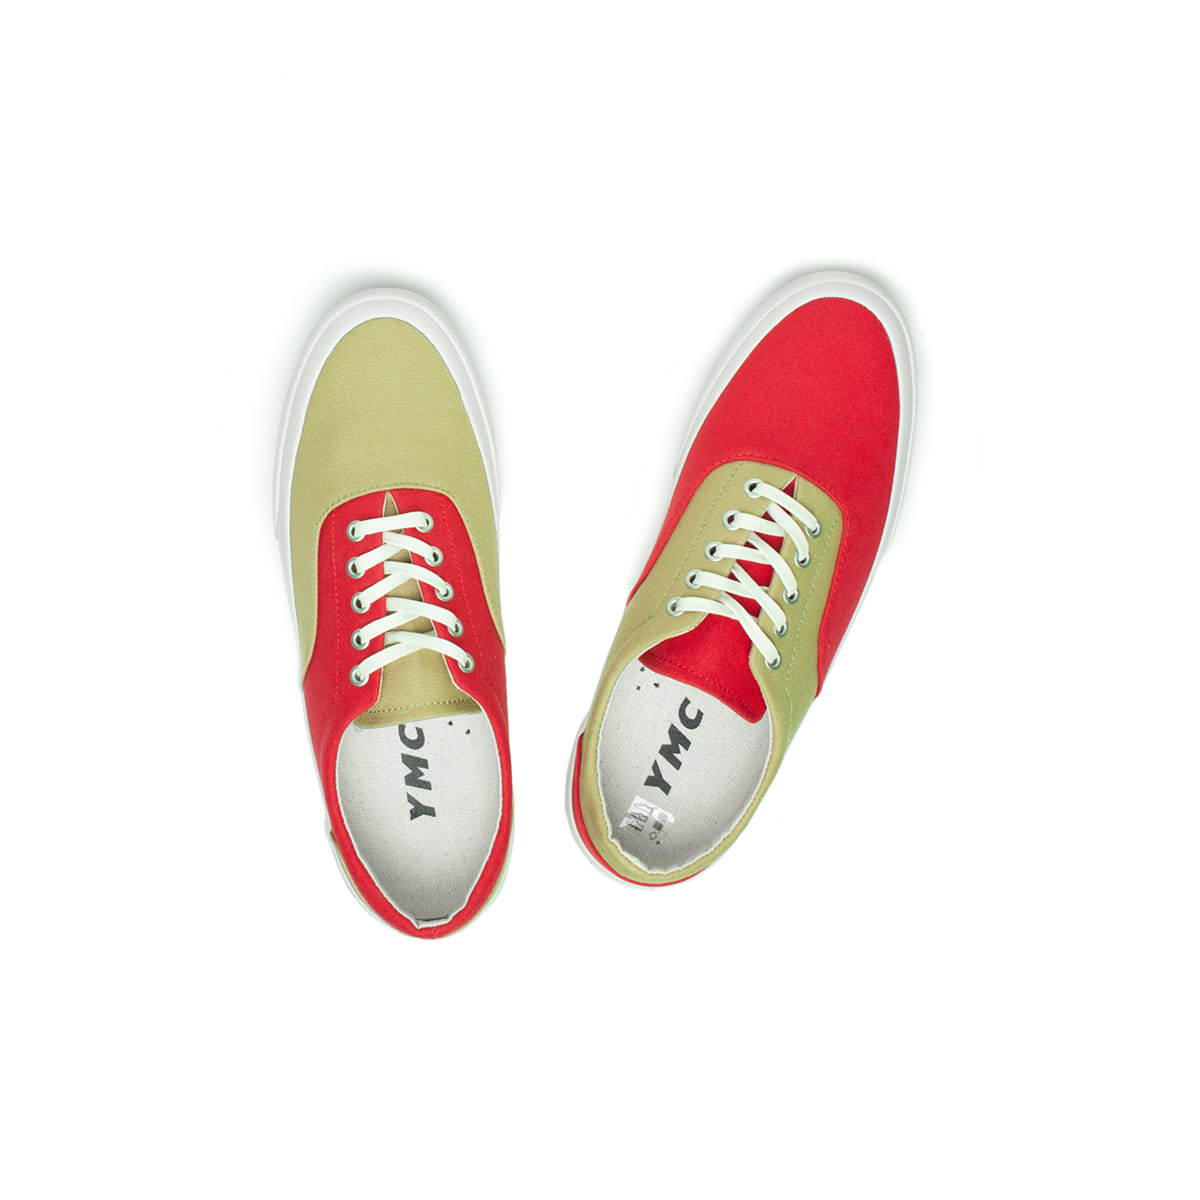 [YMC] 2 TONE TRAINER 'KHAKI / RED'